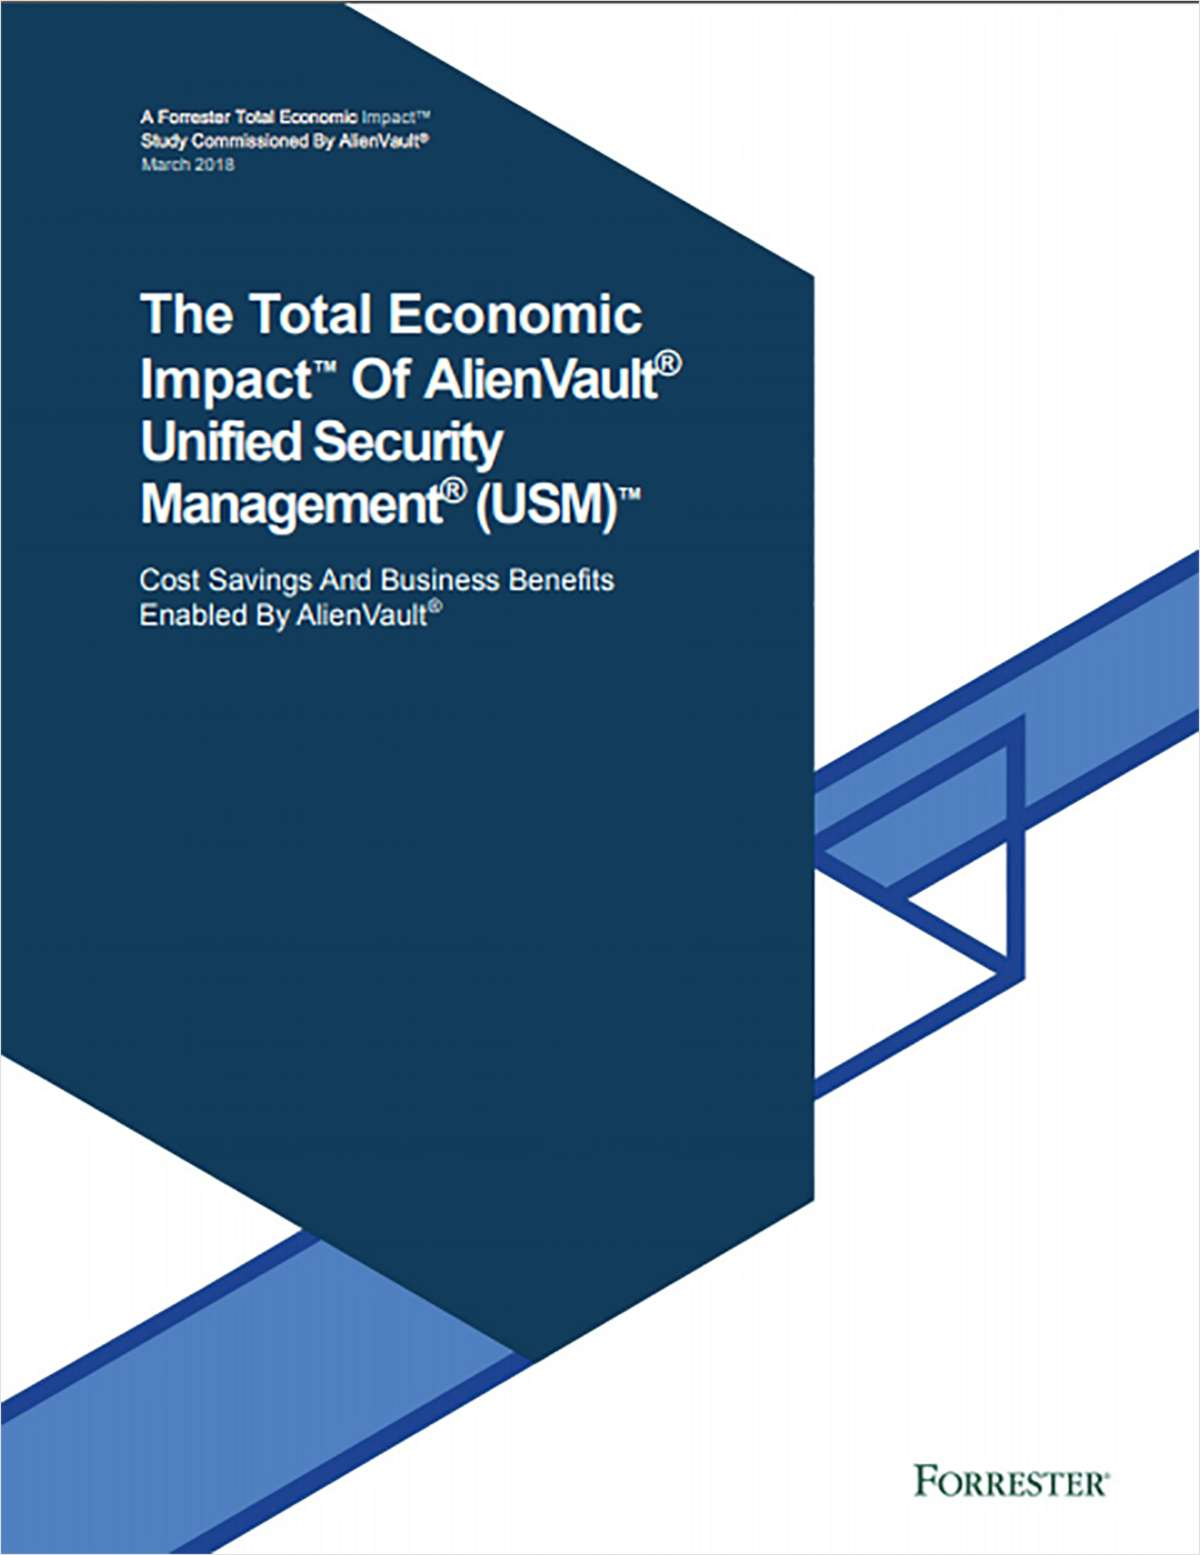 Forrester Study: The Total Economic Impact™ of USM Anywhere